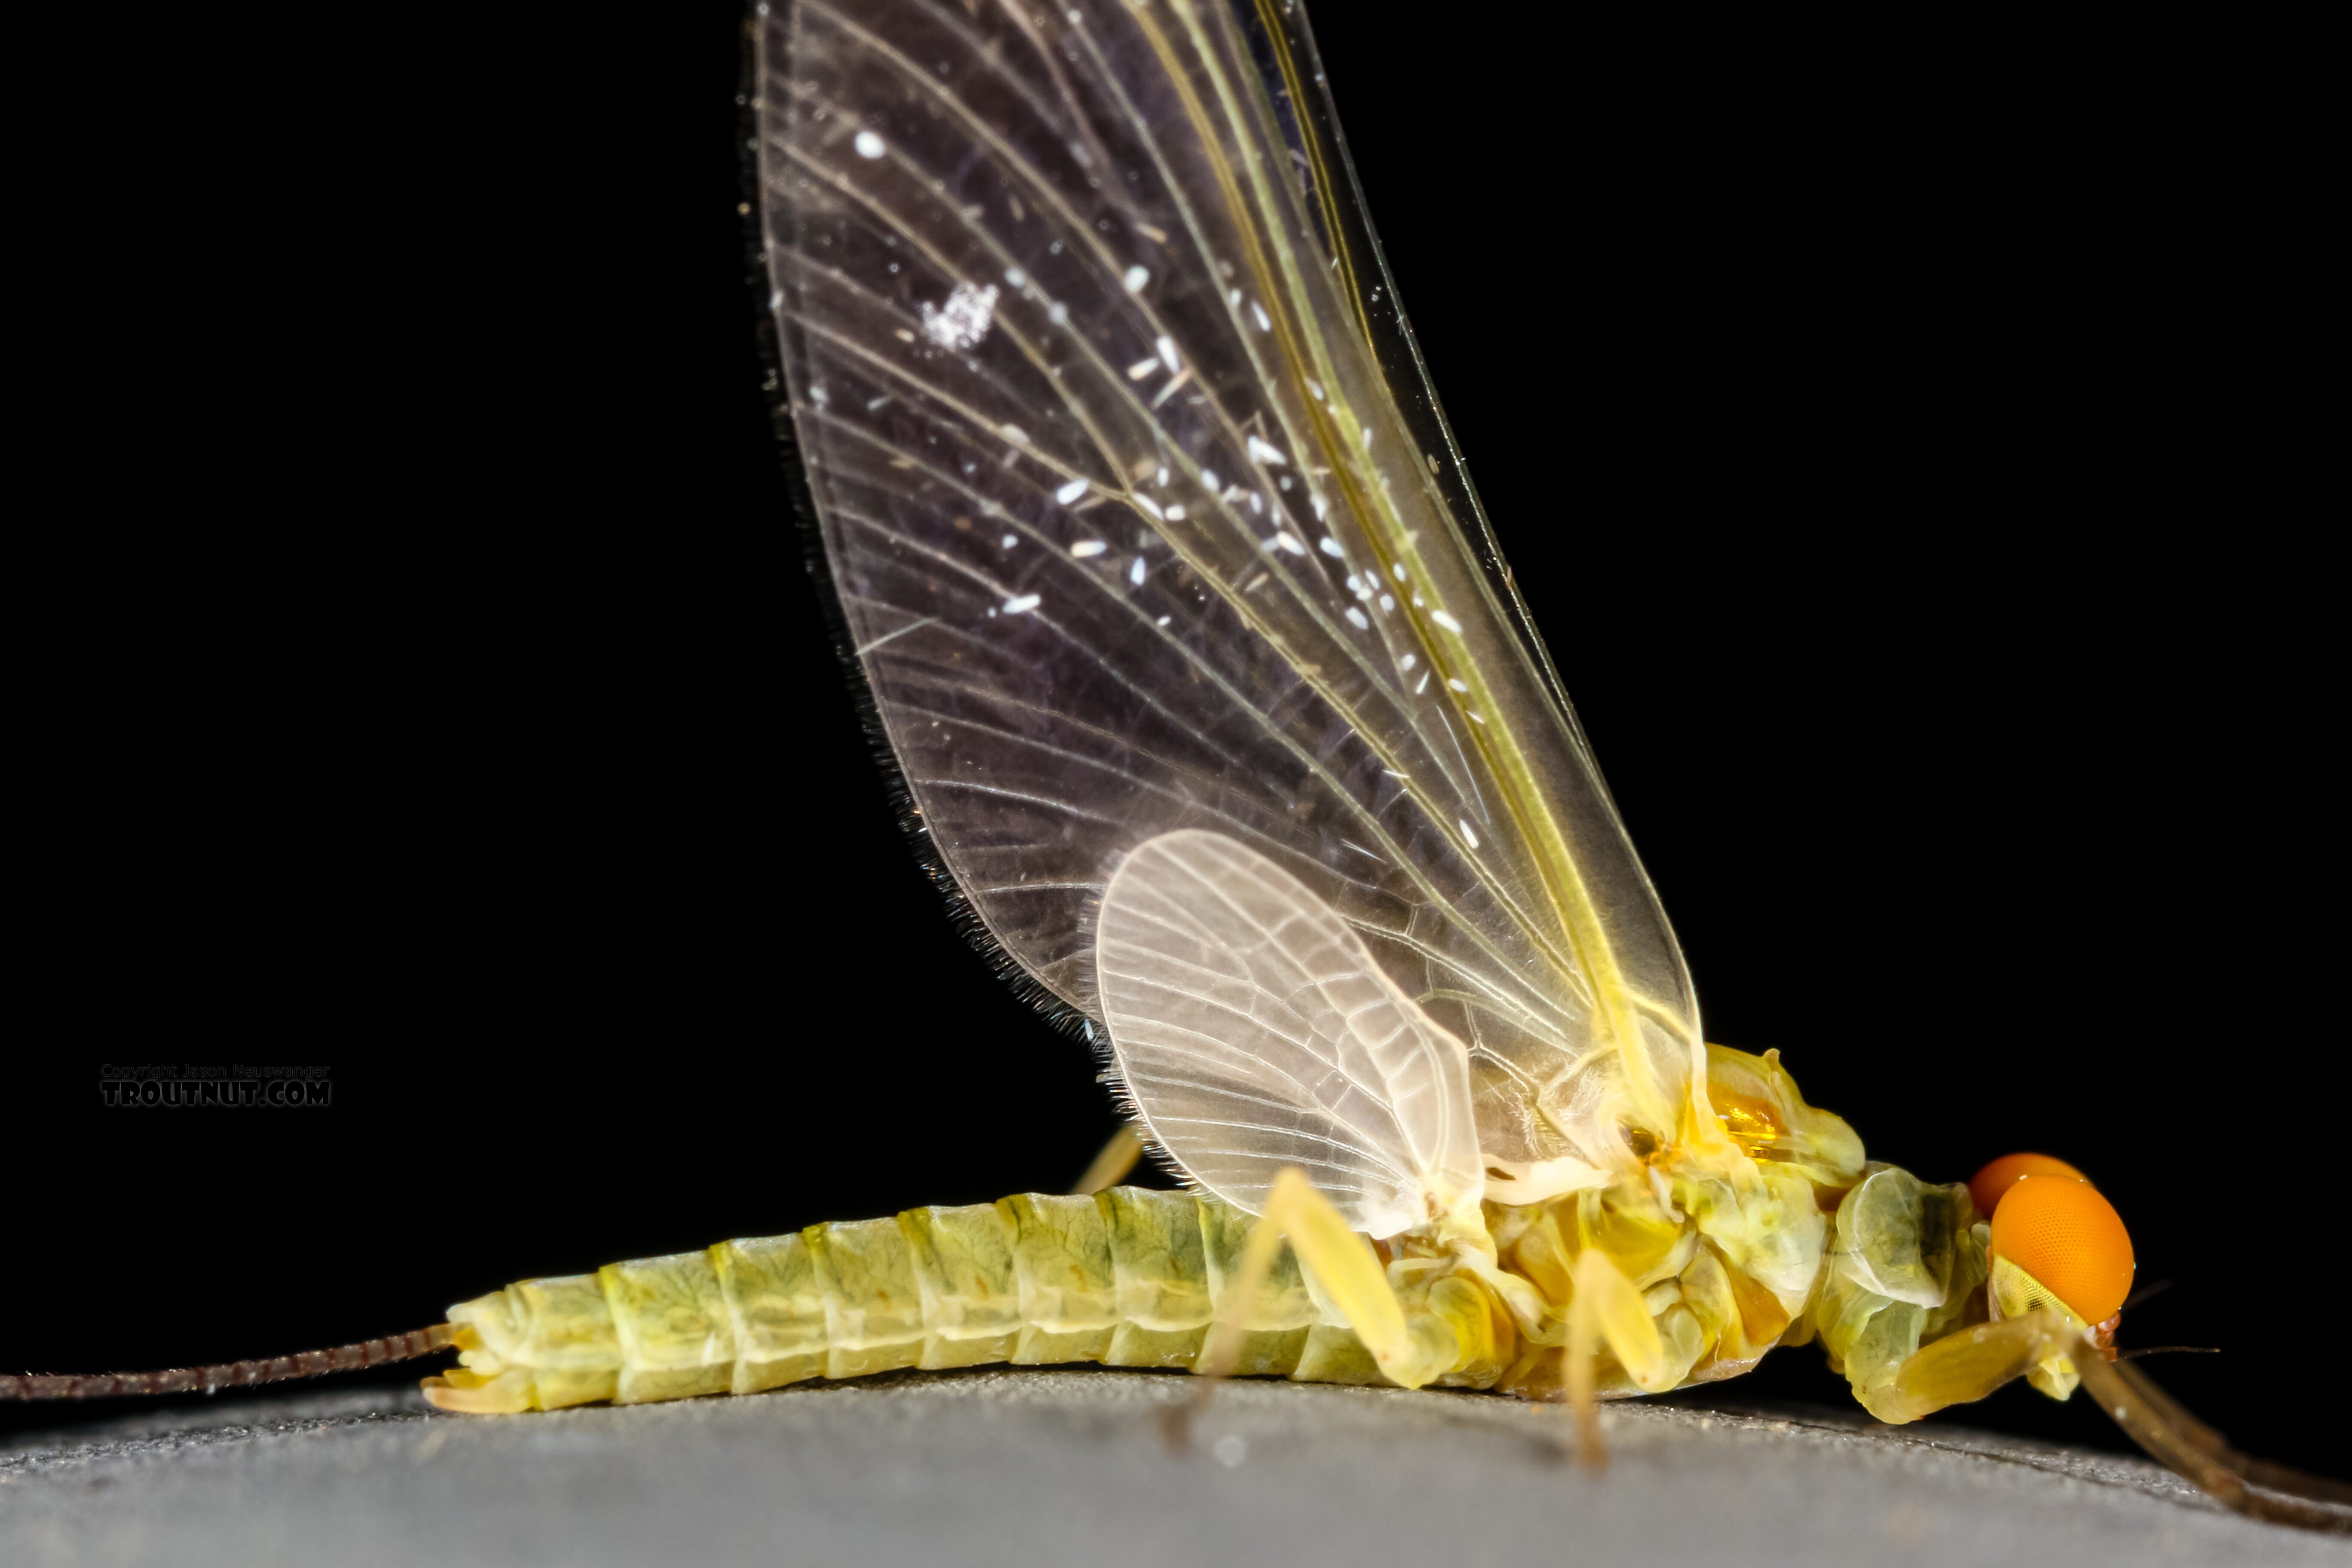 Male Ephemerella excrucians (Pale Morning Dun) Mayfly Dun from the Henry's Fork of the Snake River in Idaho